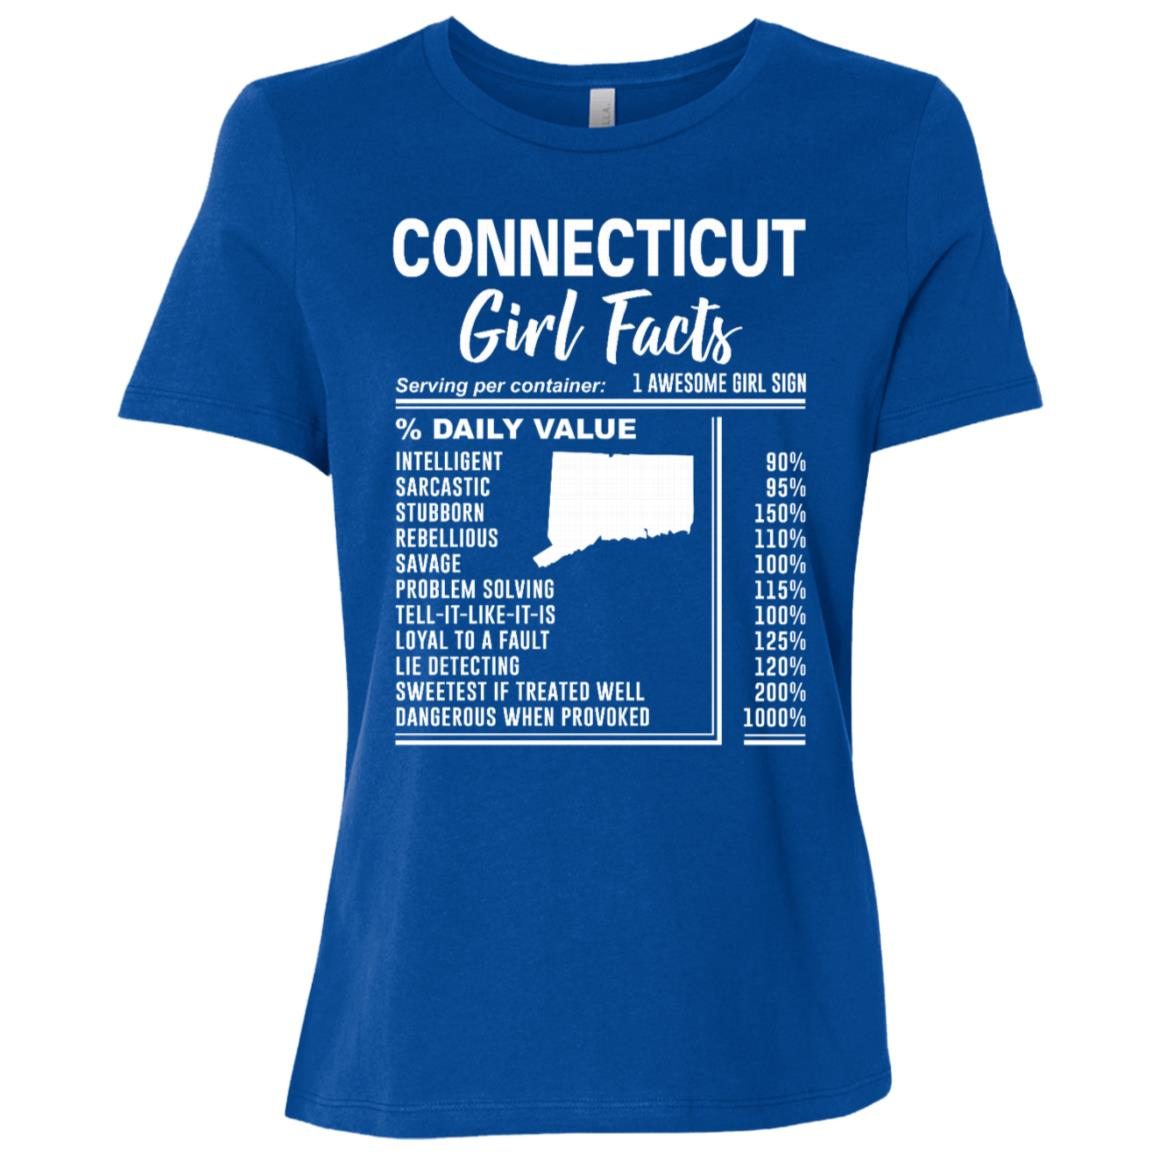 Born in Connecticut – Connecticut Girl Facts Women Short Sleeve T-Shirt